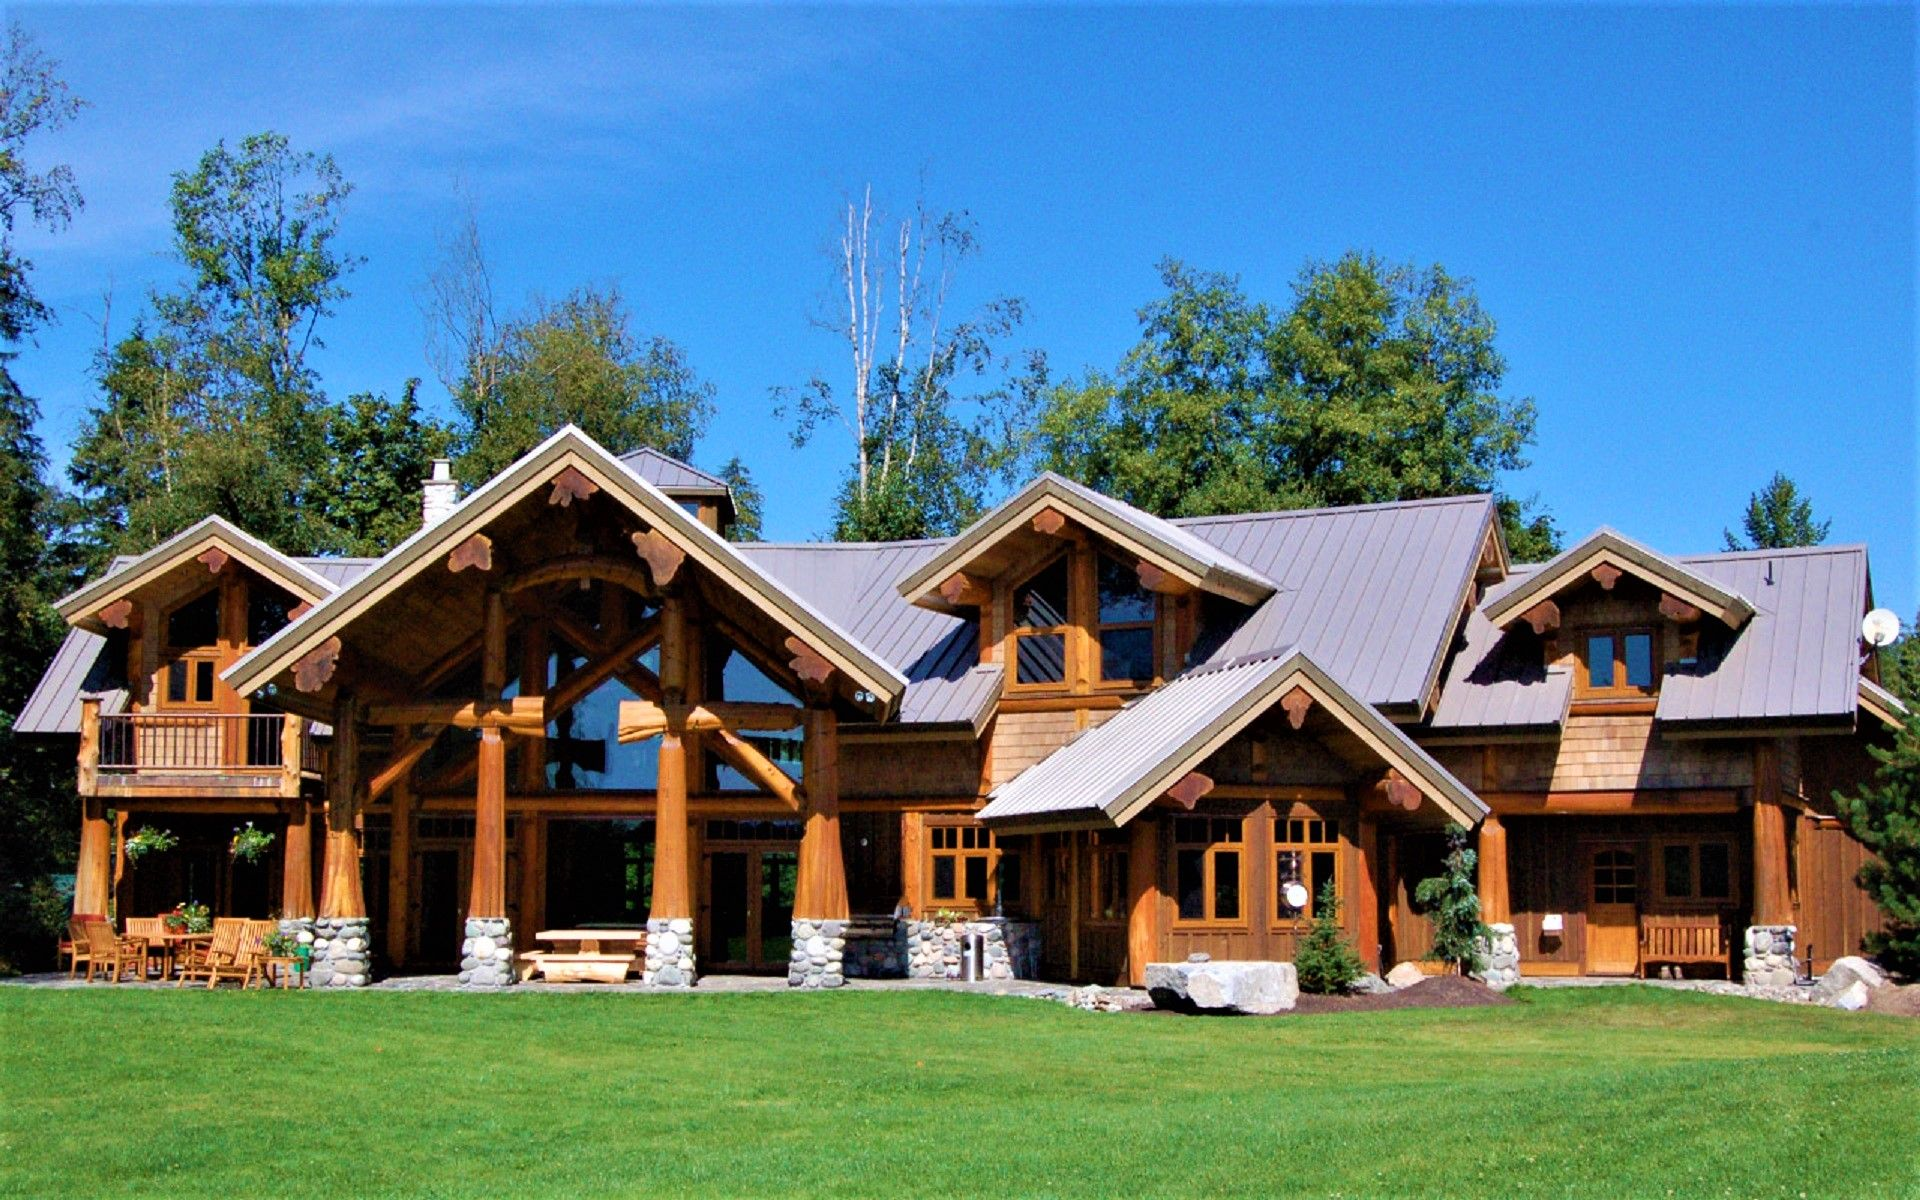 Langley Post Beam Located On A 20 Acre Estate In Langley Bc This Is One Of West Coast Log Homes Flagship Homes With Stunning Architectural De S